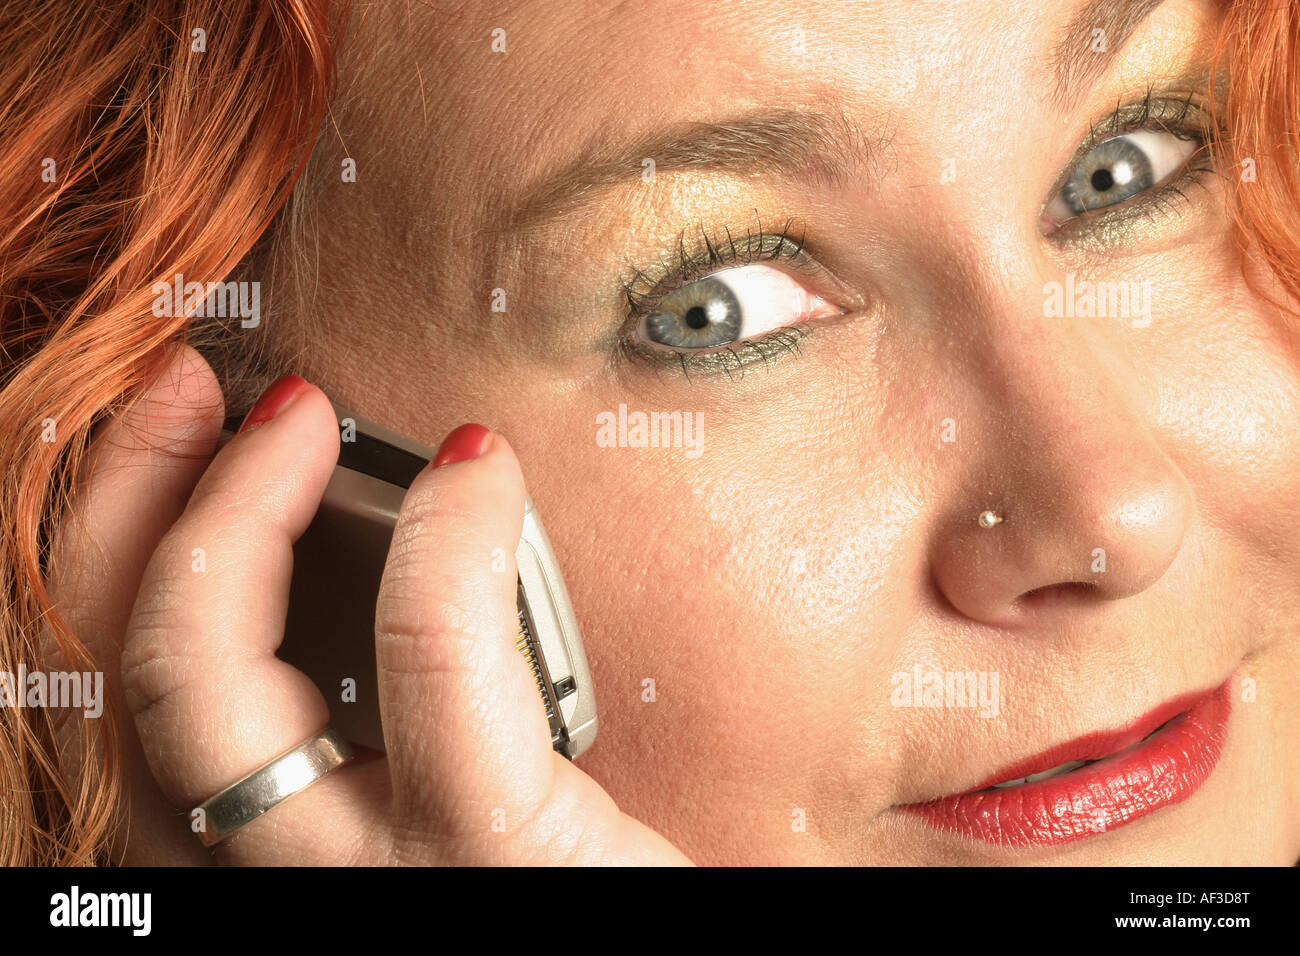 redheaded woman calling with mobile telephone, Germany - Stock Image